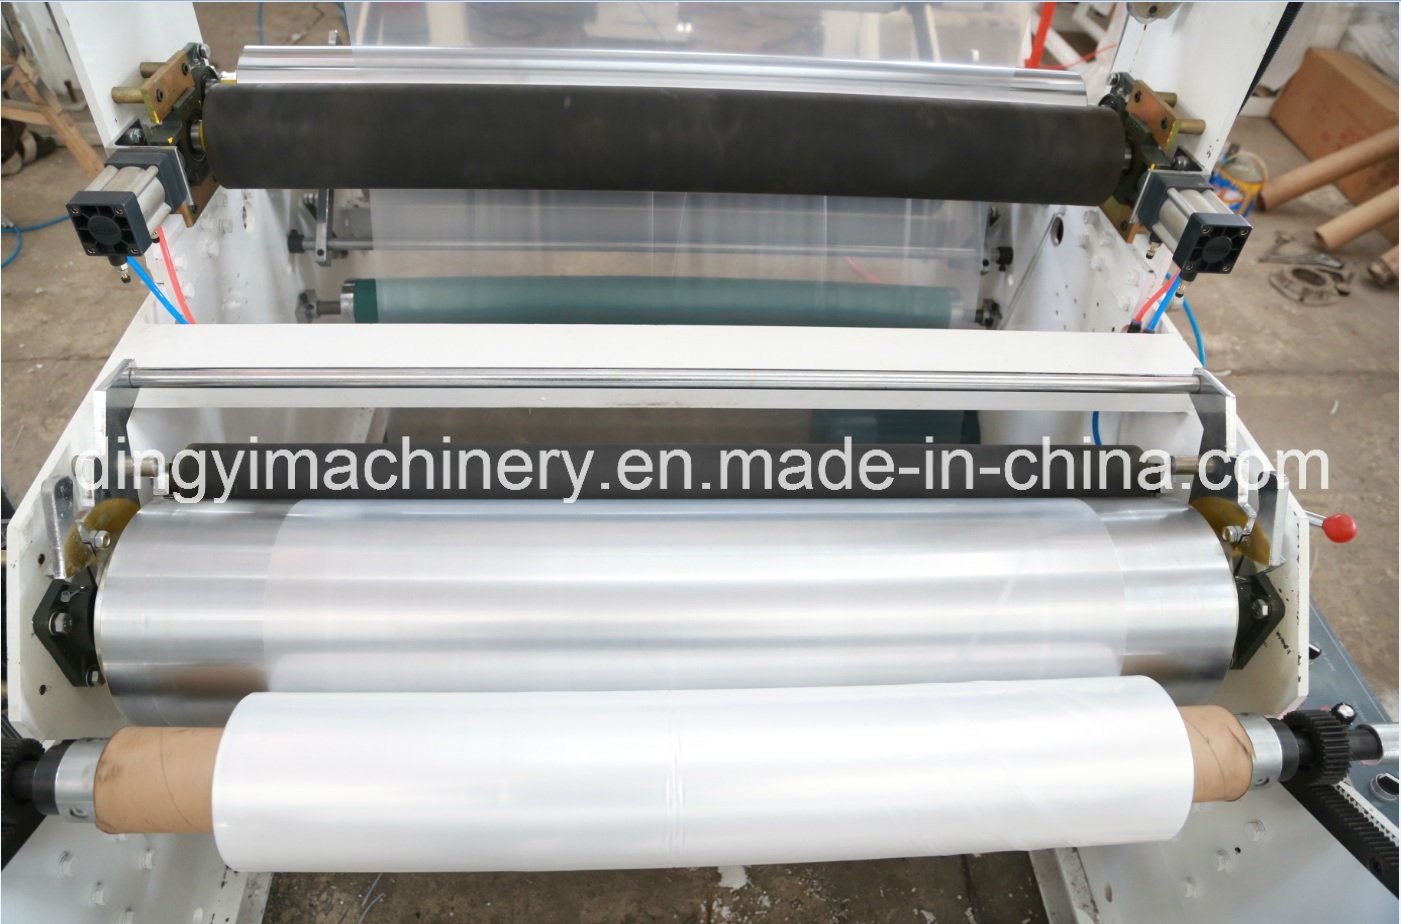 HD / Ld PE Film Blowing Machine